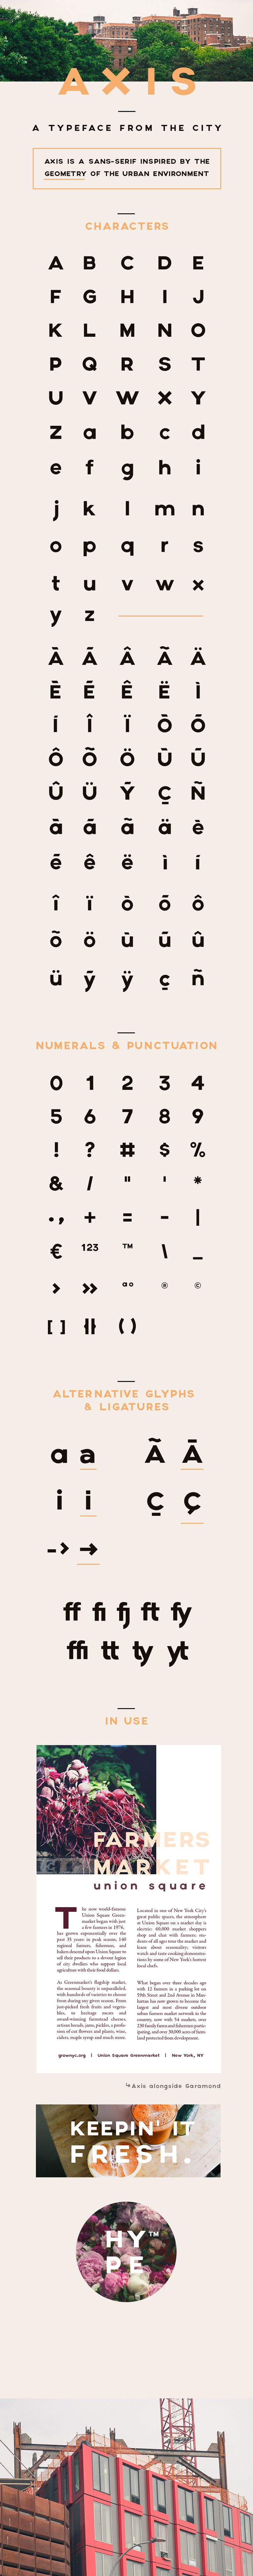 AXIS Typeface #type #free #download http://www.behance.net/gallery/17890579/AXIS-Typeface